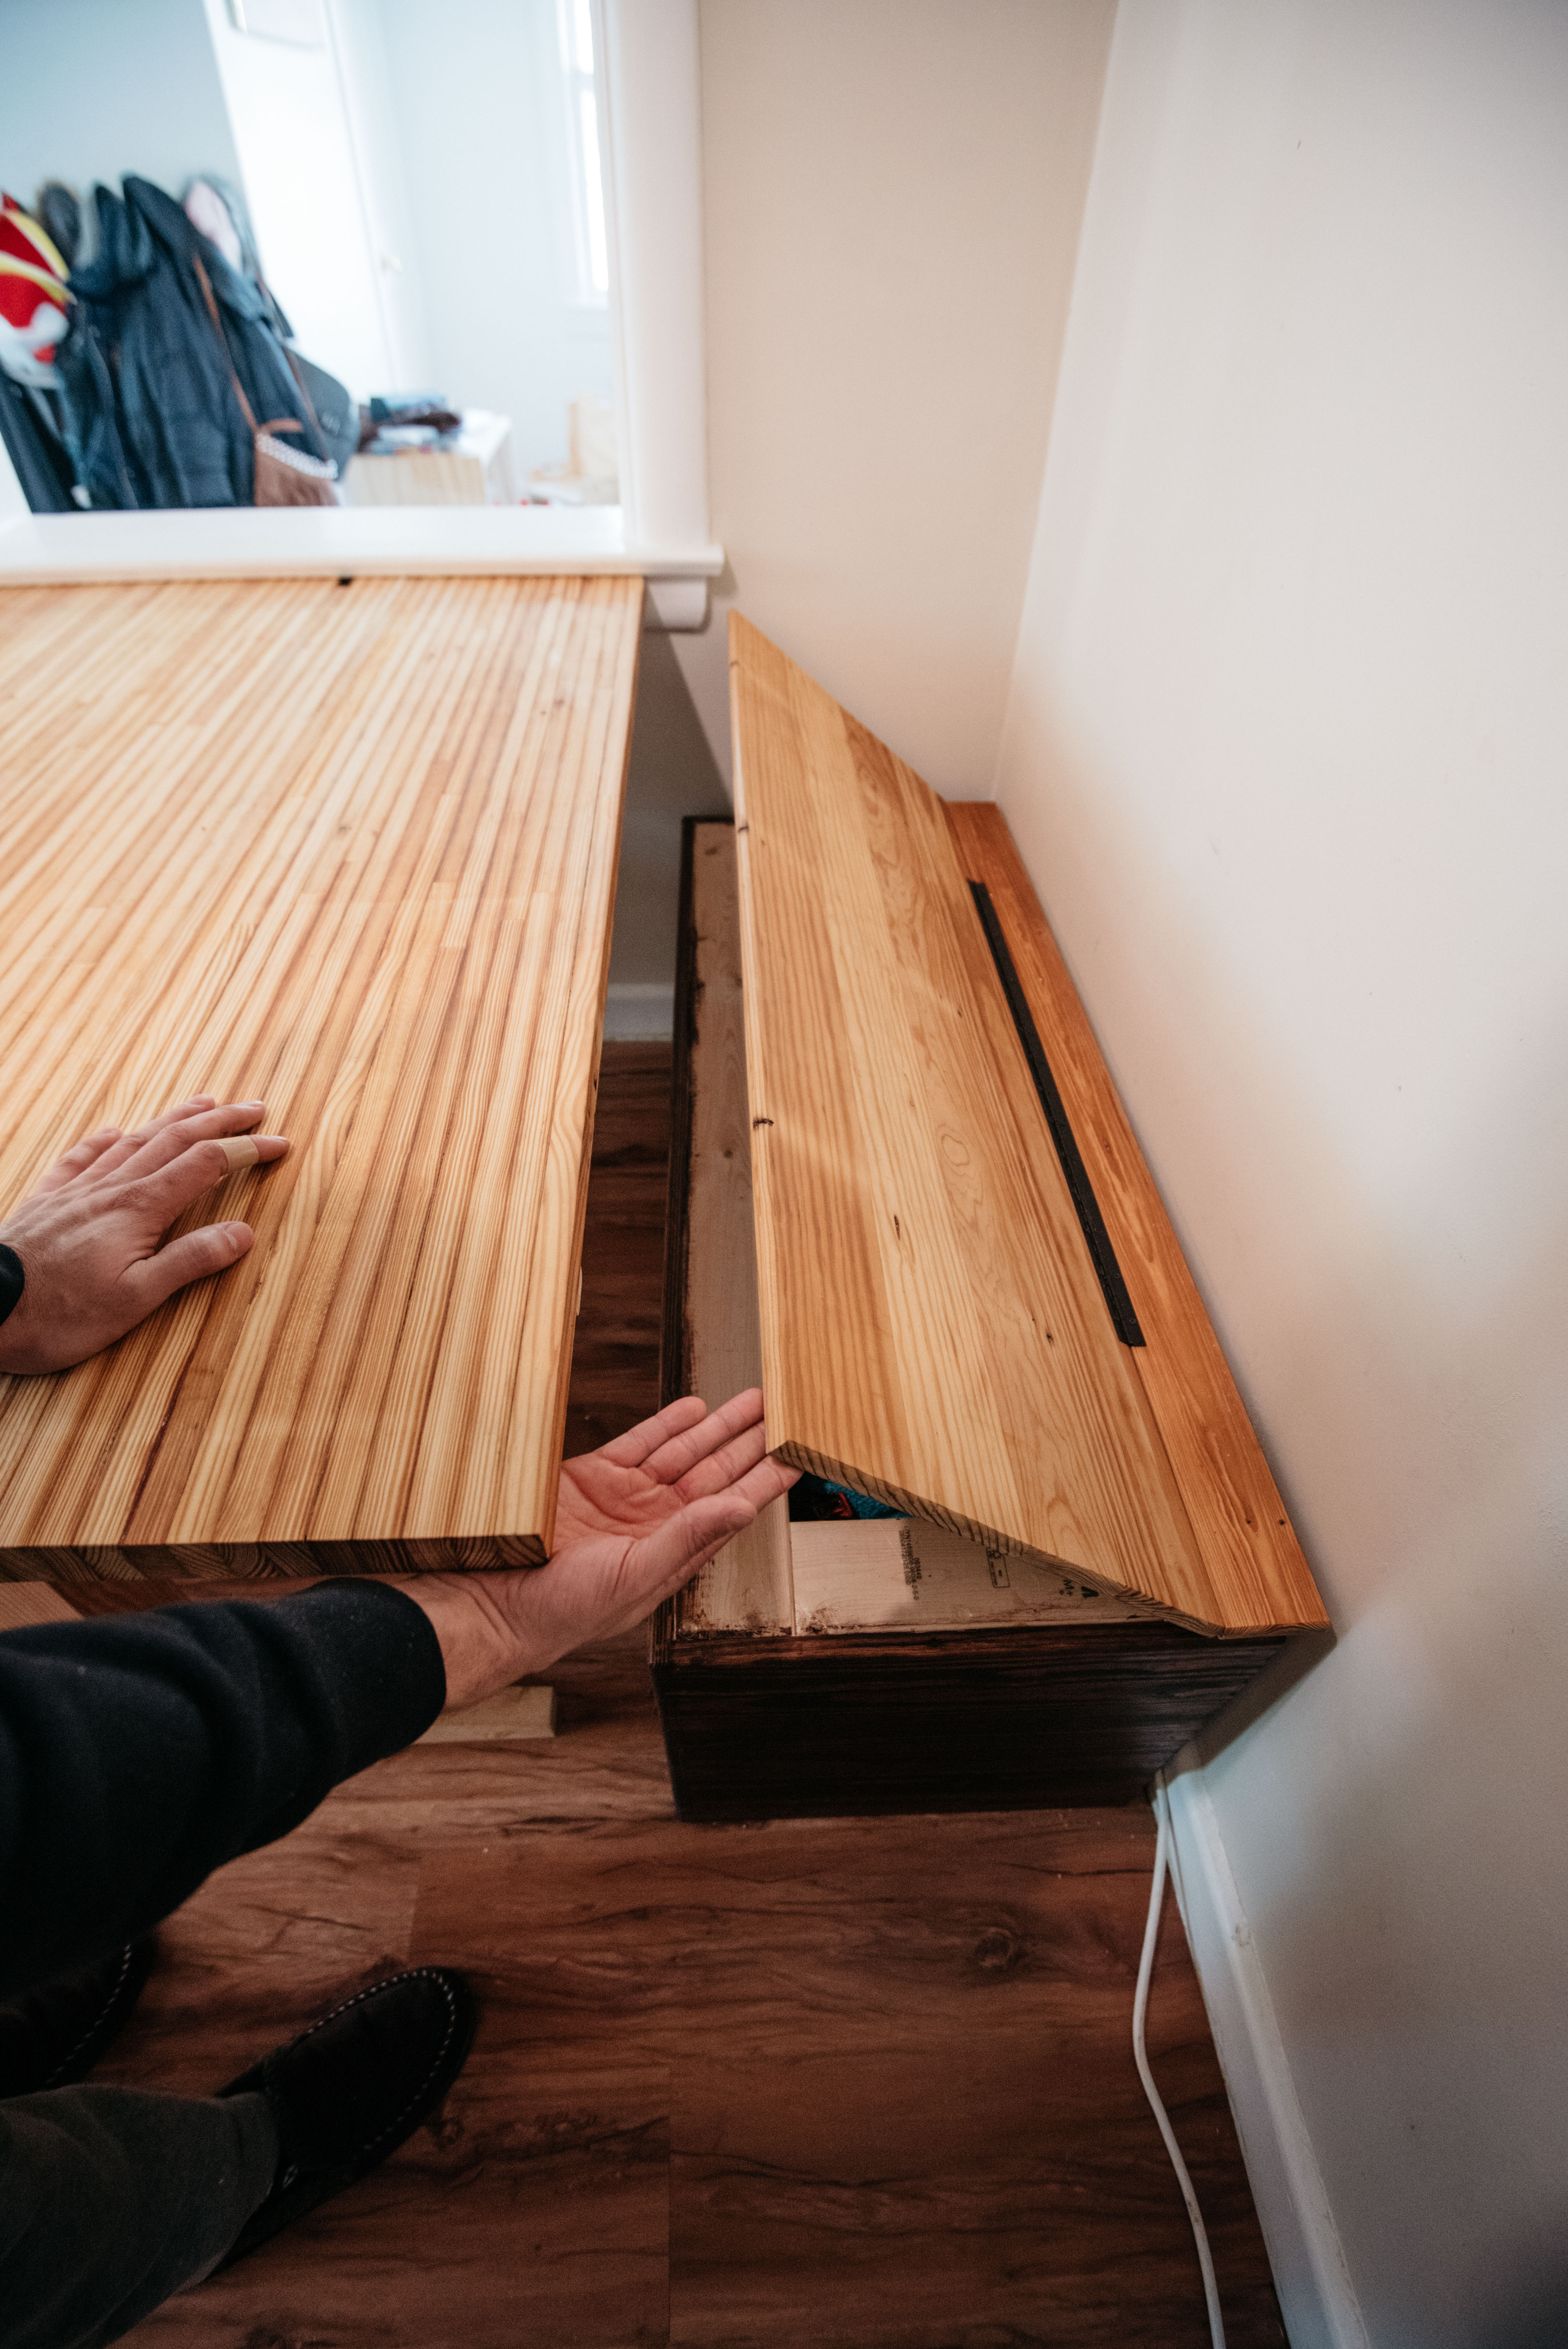 Diy Reclaimed Lumber Kitchen Nook Part 1 Bench With Storage Los Rodriguez Life